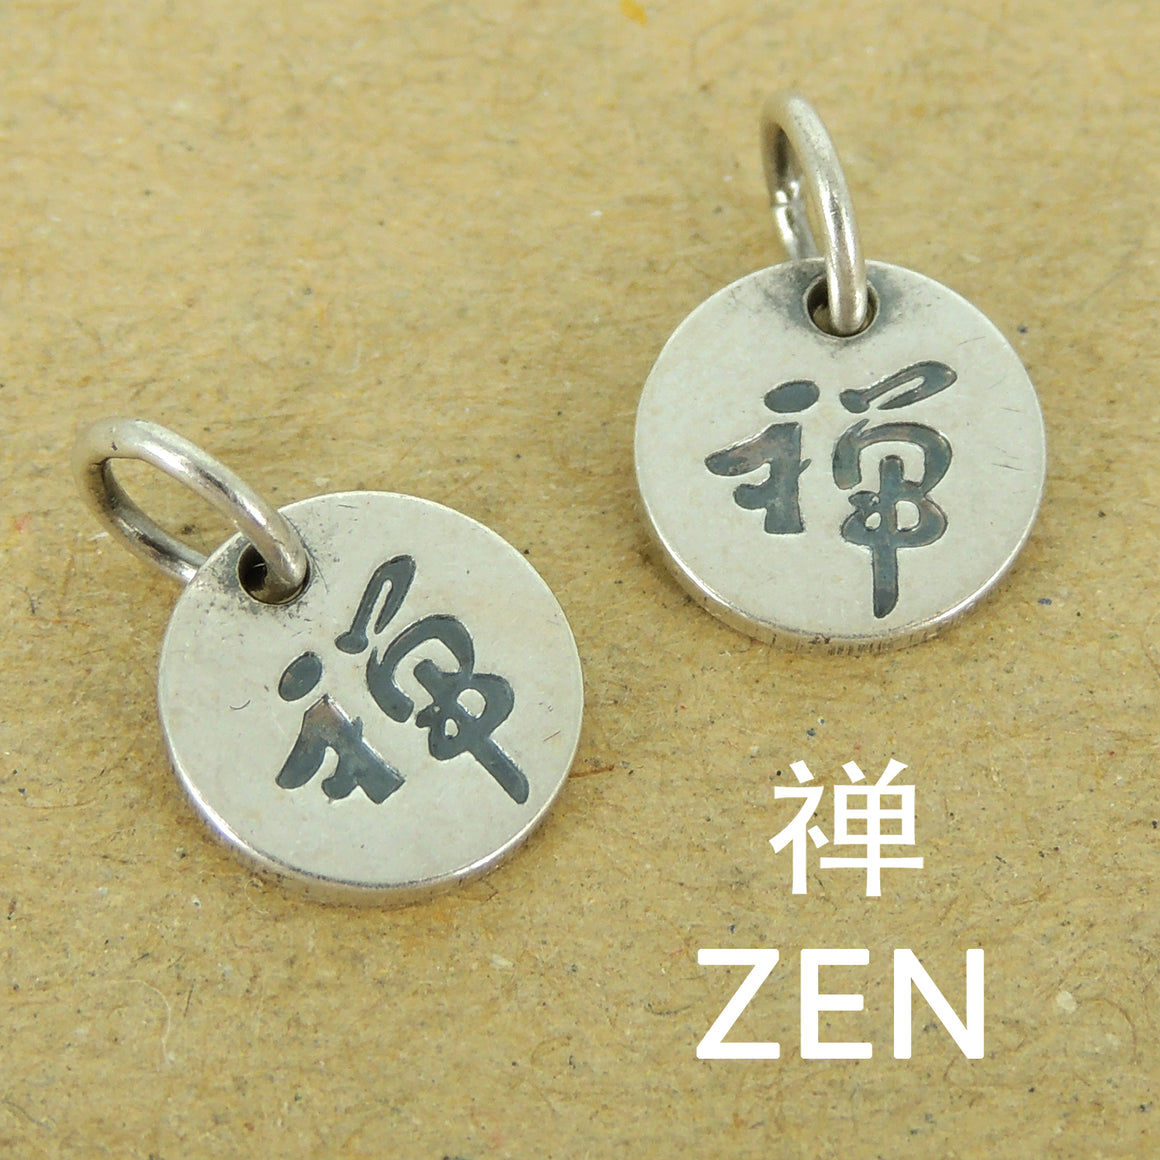 Zen Round Pendants Charms | Meditation Protection Unique DIY Jewelry Parts | Genuine 925 Sterling Silver with 925 Stamp 禅